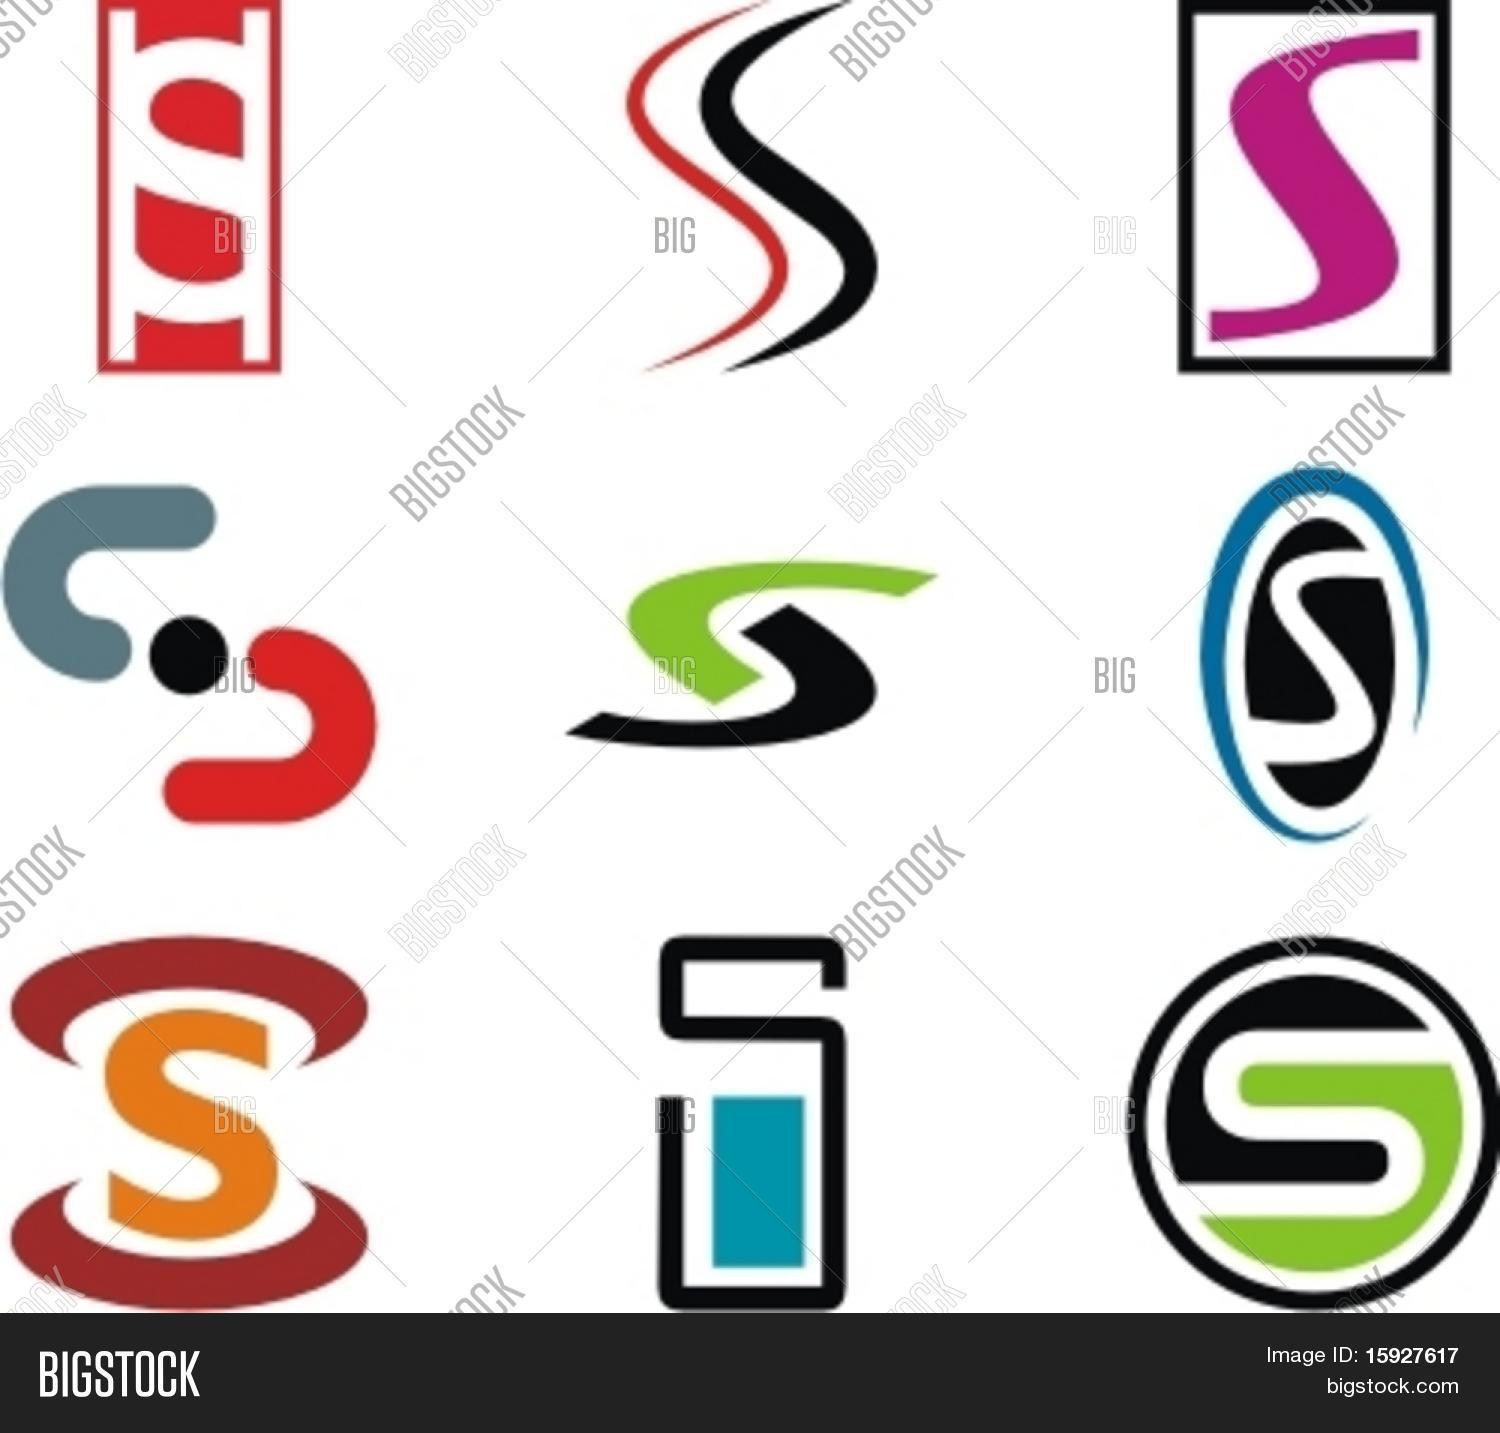 Alphabetical logo design concepts vector photo bigstock for S design photo